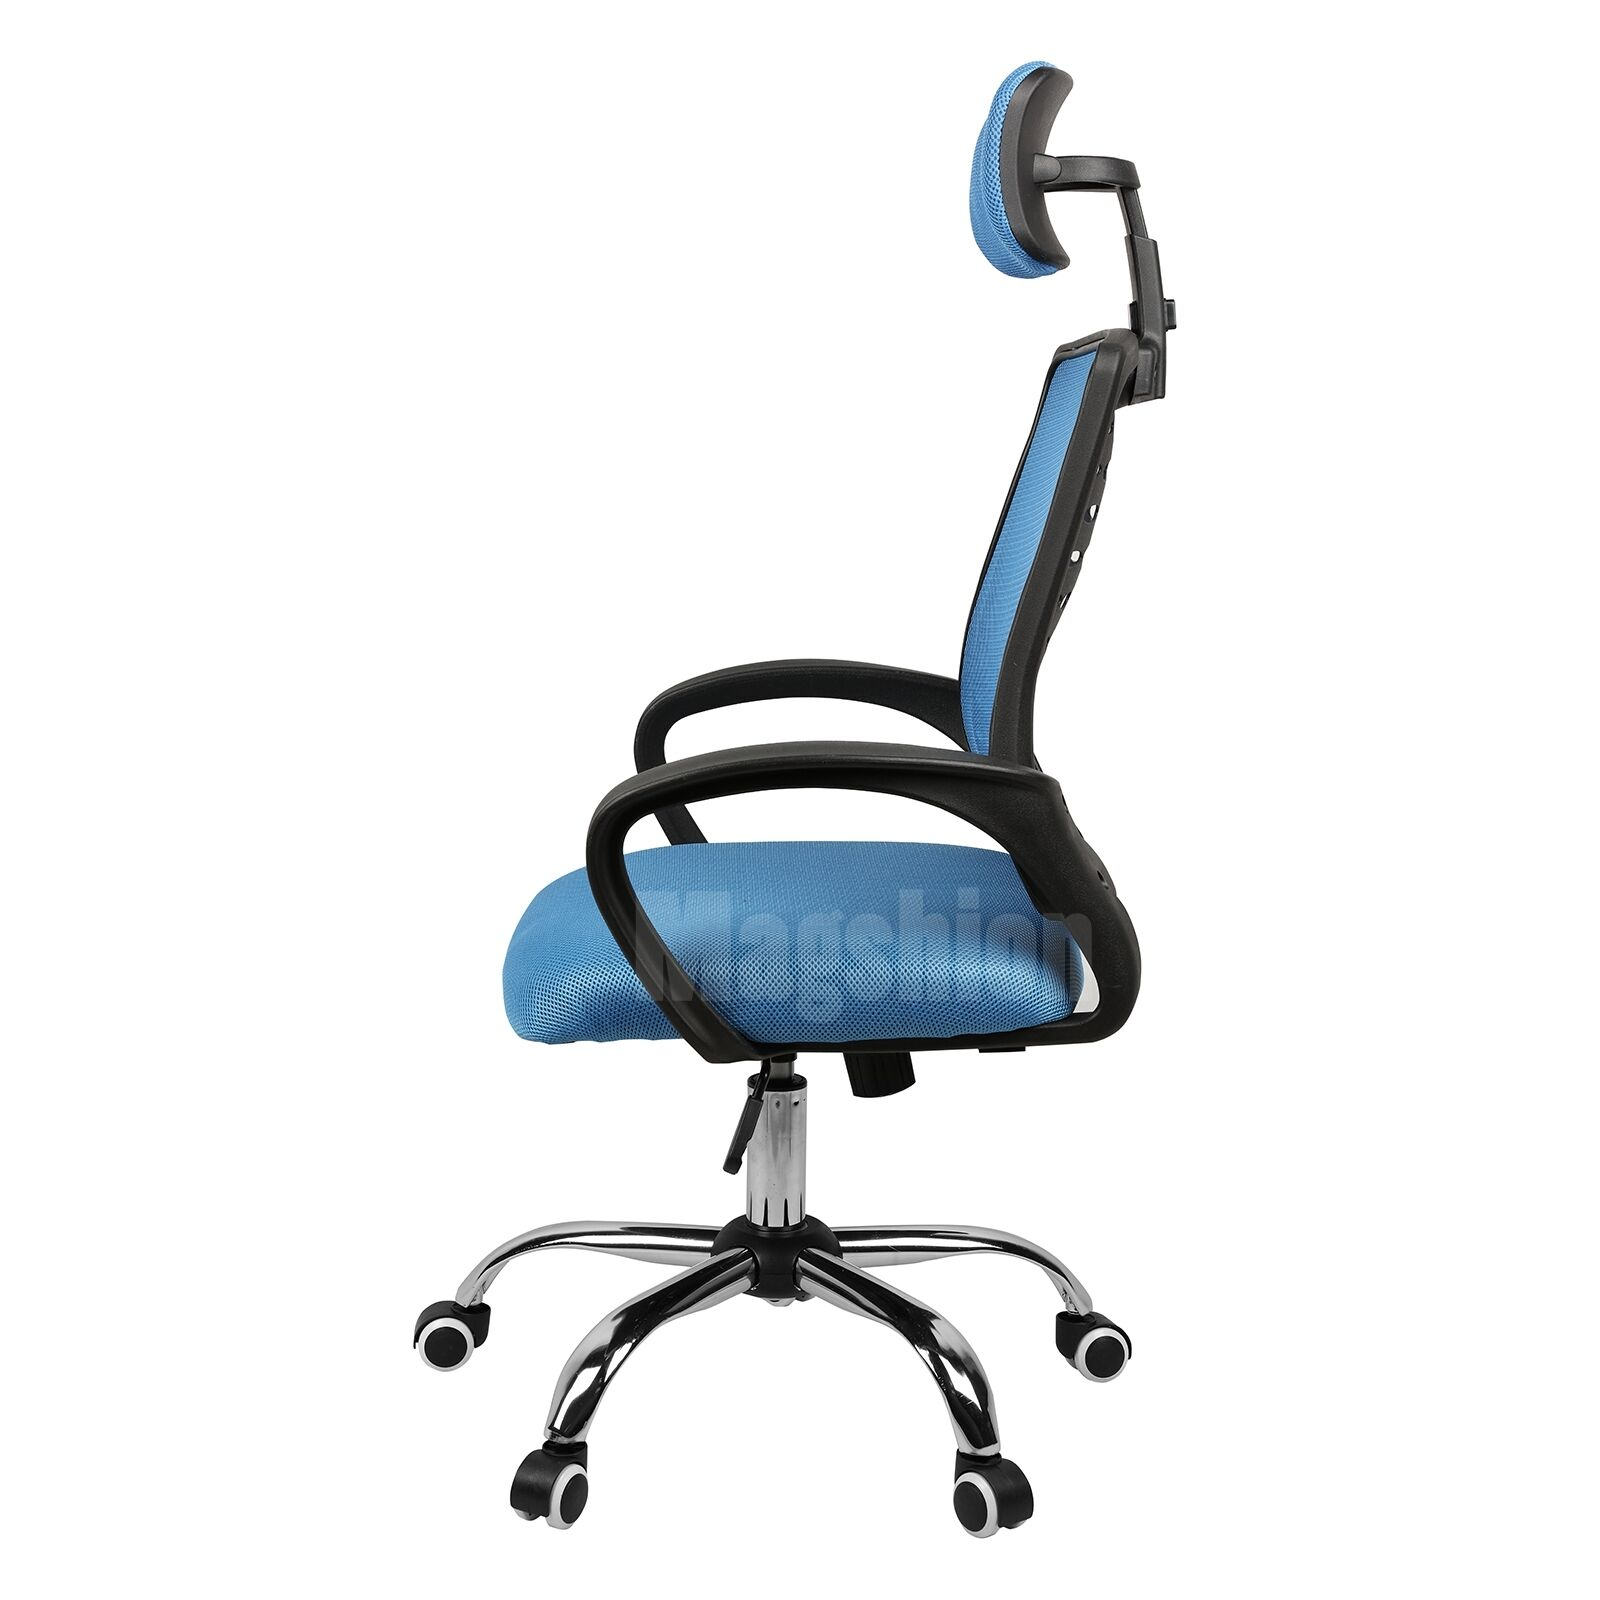 modern drafting chair how to reupholster a cushion home computer office desk commercial task